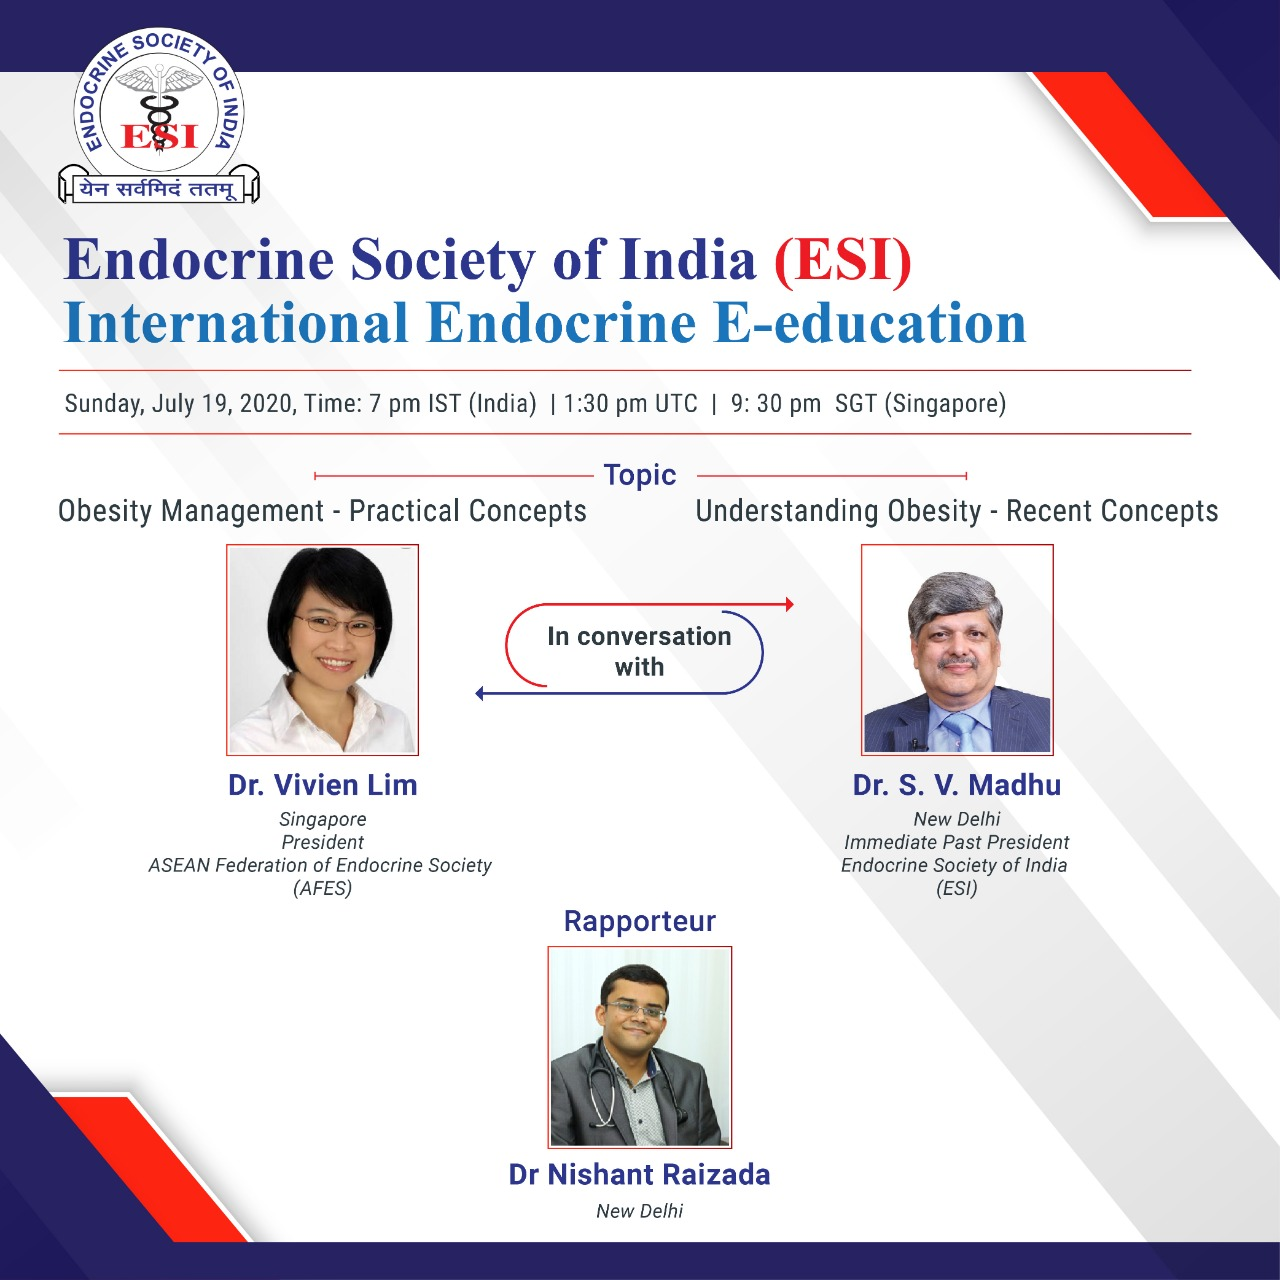 Series of Webinars from the Endocrine Society of India